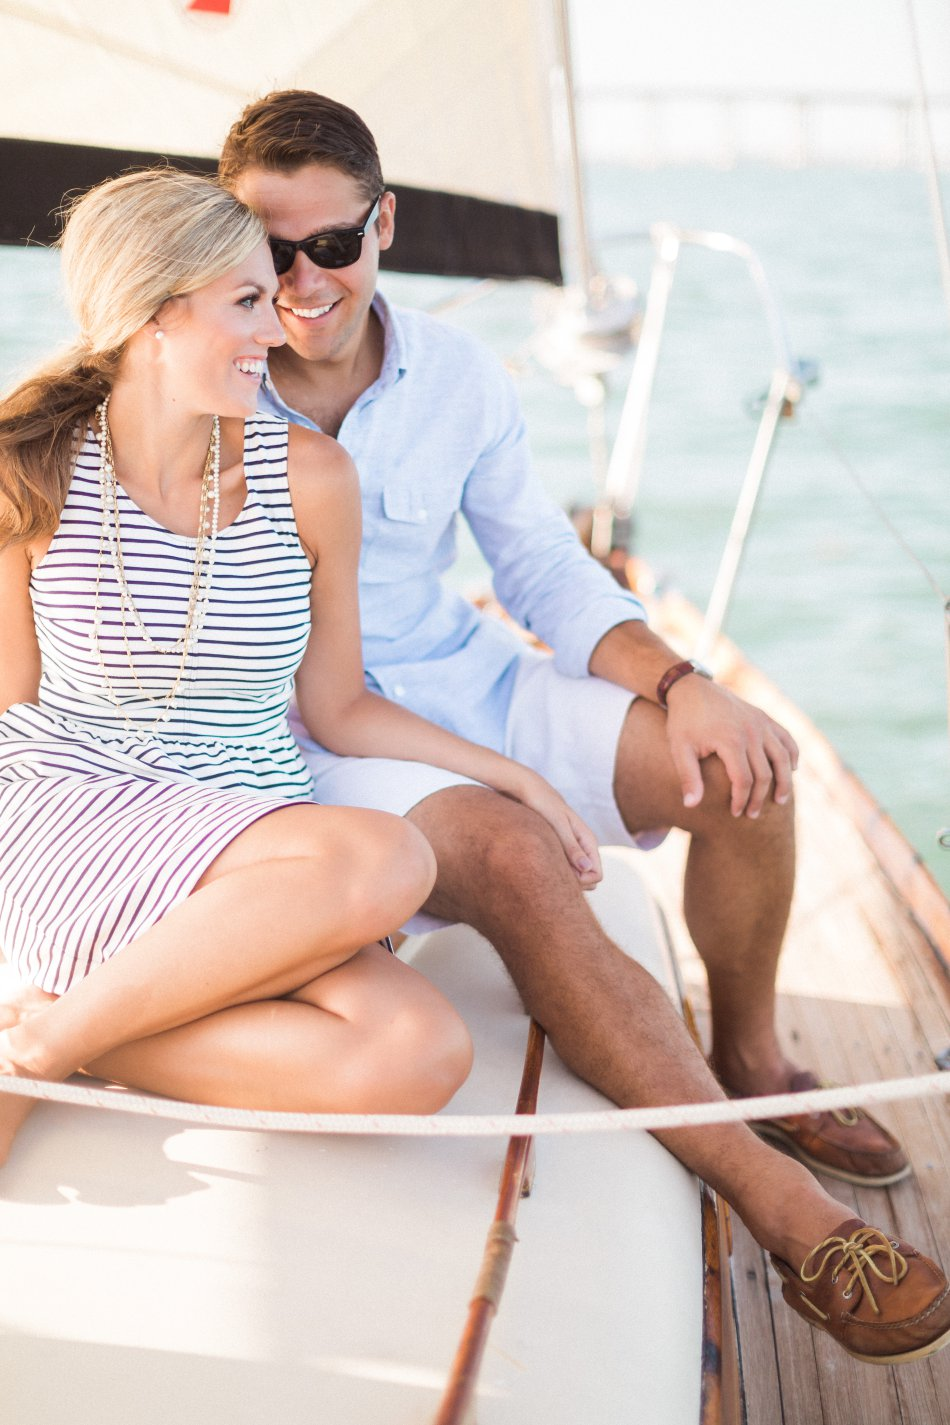 naples-luxury-sailing-engagement-photography-nautical-sailboat-engagement_1082.jpg